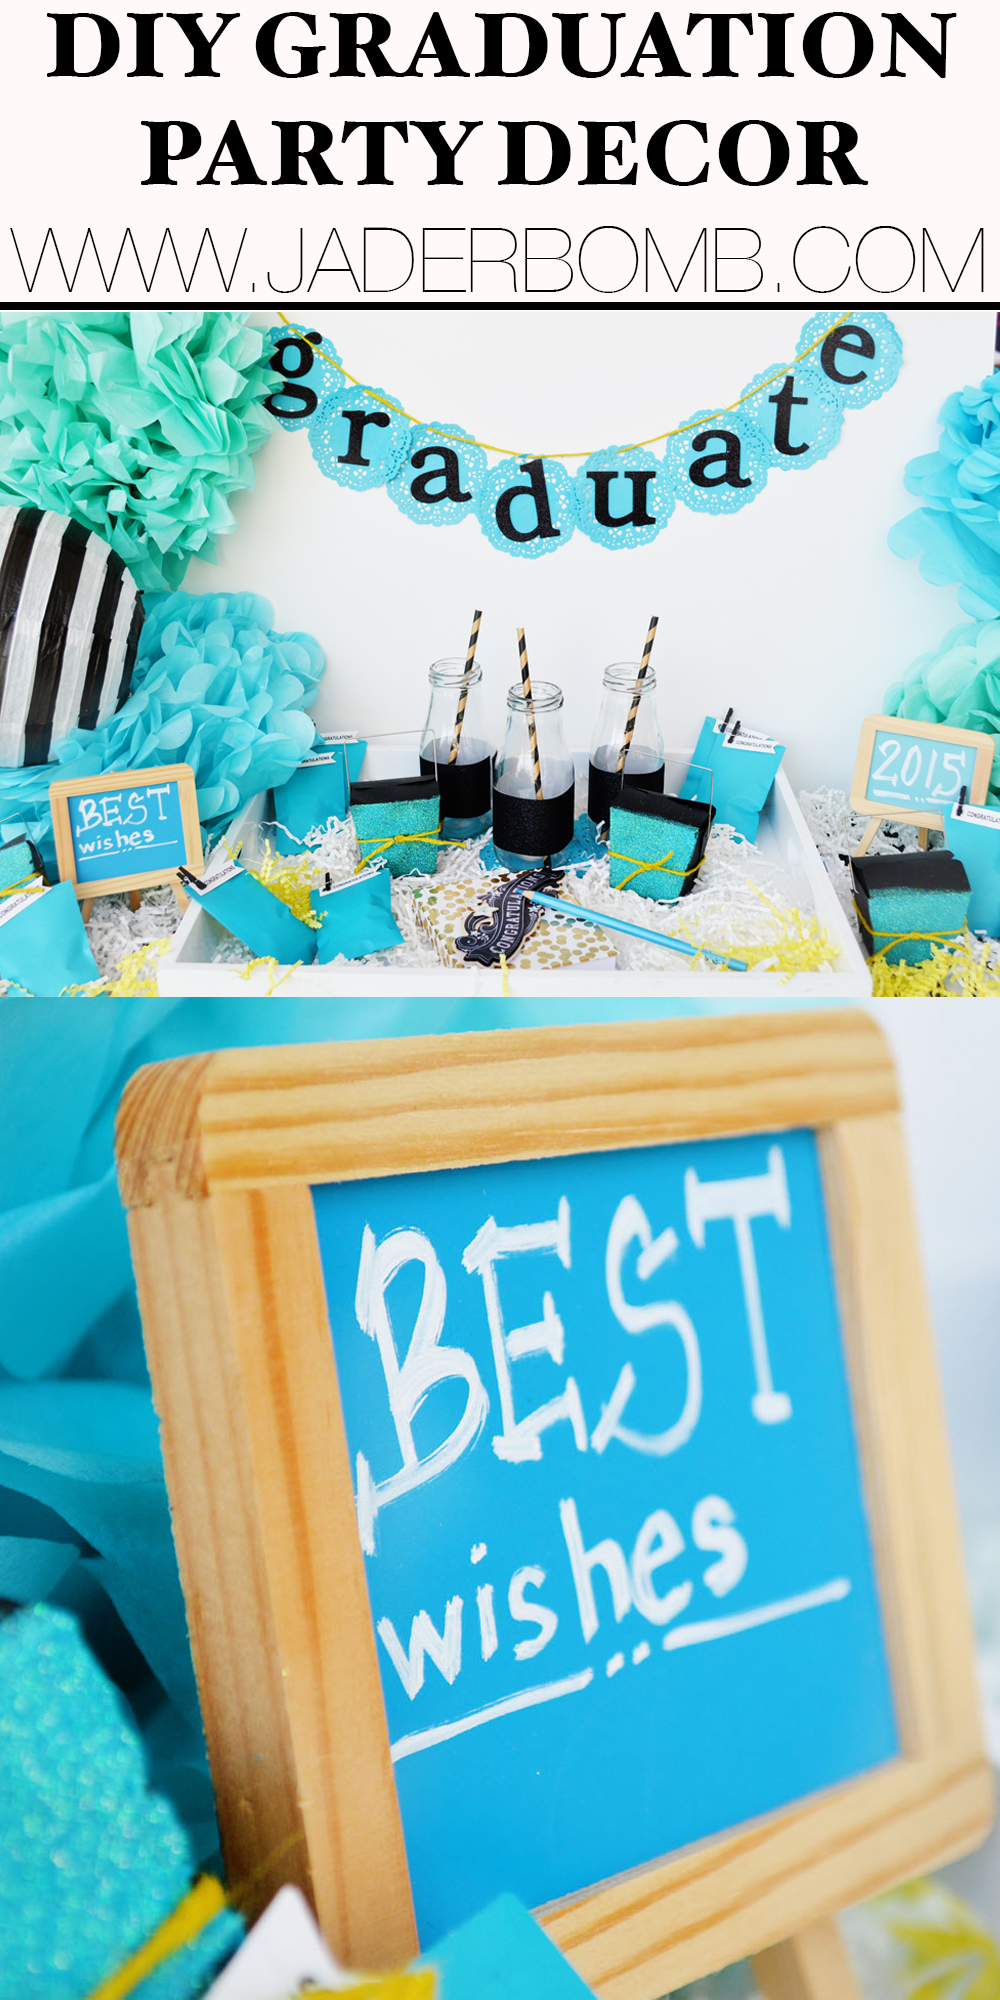 DIY GRADUATION DECOR